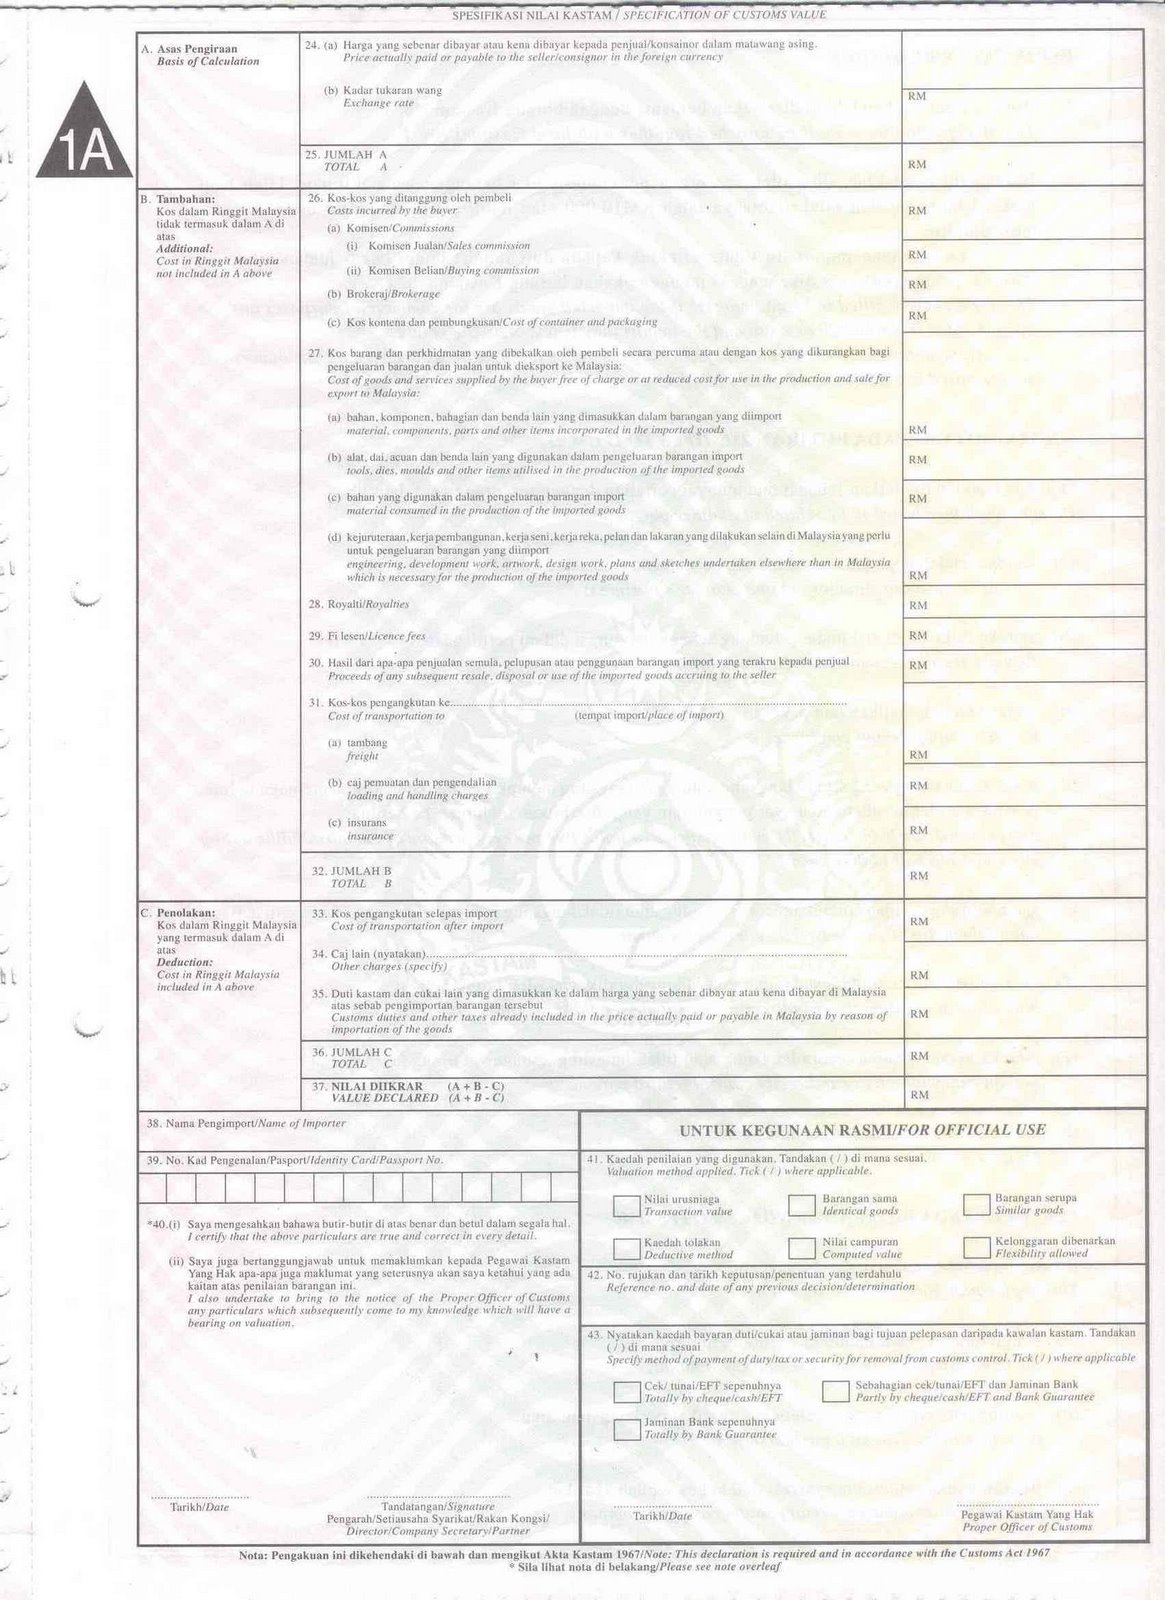 54 Info Sample K2 Form Malaysia Download Doc Zip